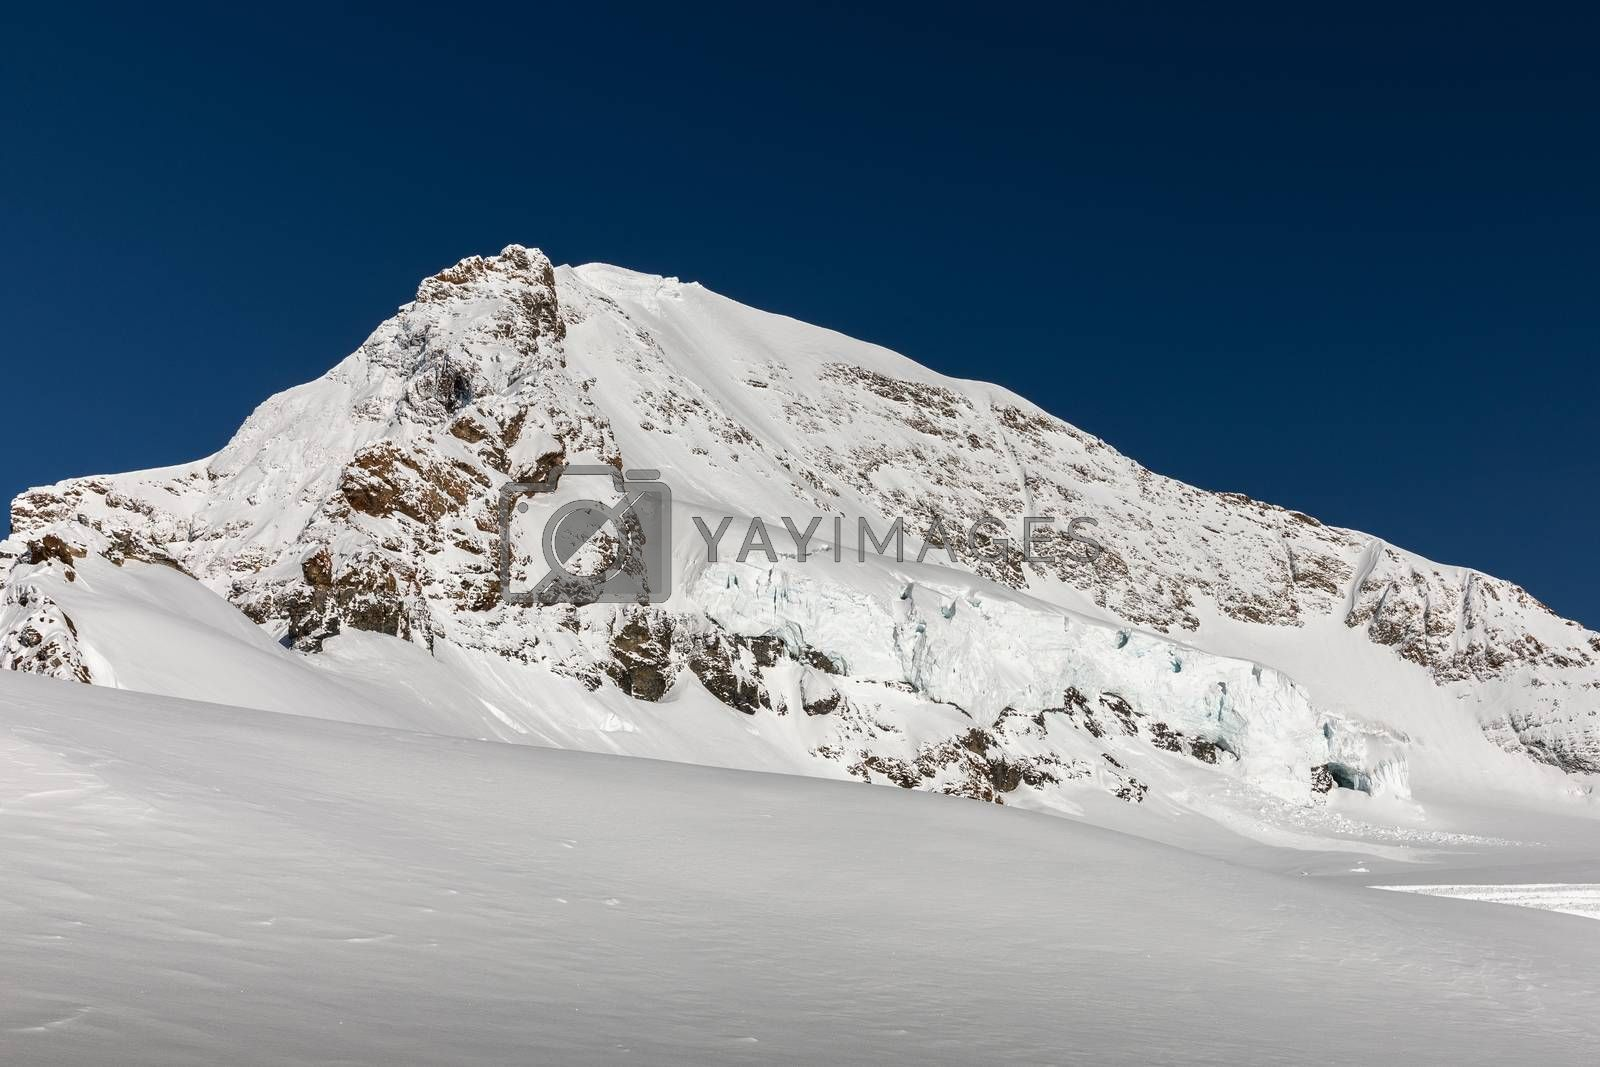 Rock peak of snow-capped mountain with blue sky in Jungfrau, Interlaken, Switzerland. Early winter of November 2019, snow start to cover mountain area with cold temperature.